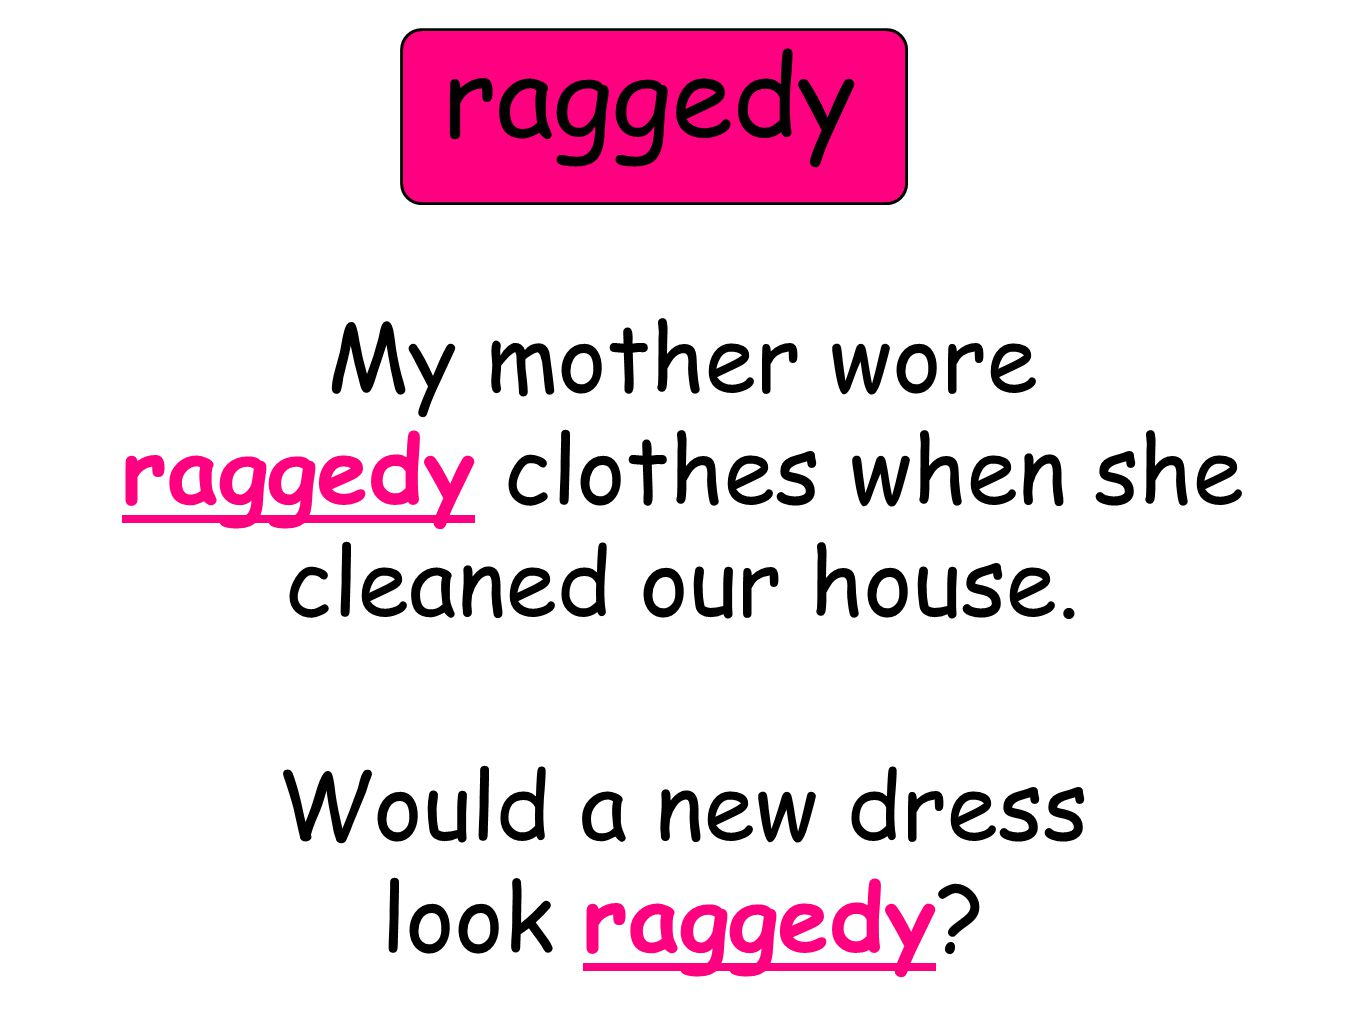 My mother wore raggedy clothes when she cleaned our house. Would a new dress look raggedy? raggedy